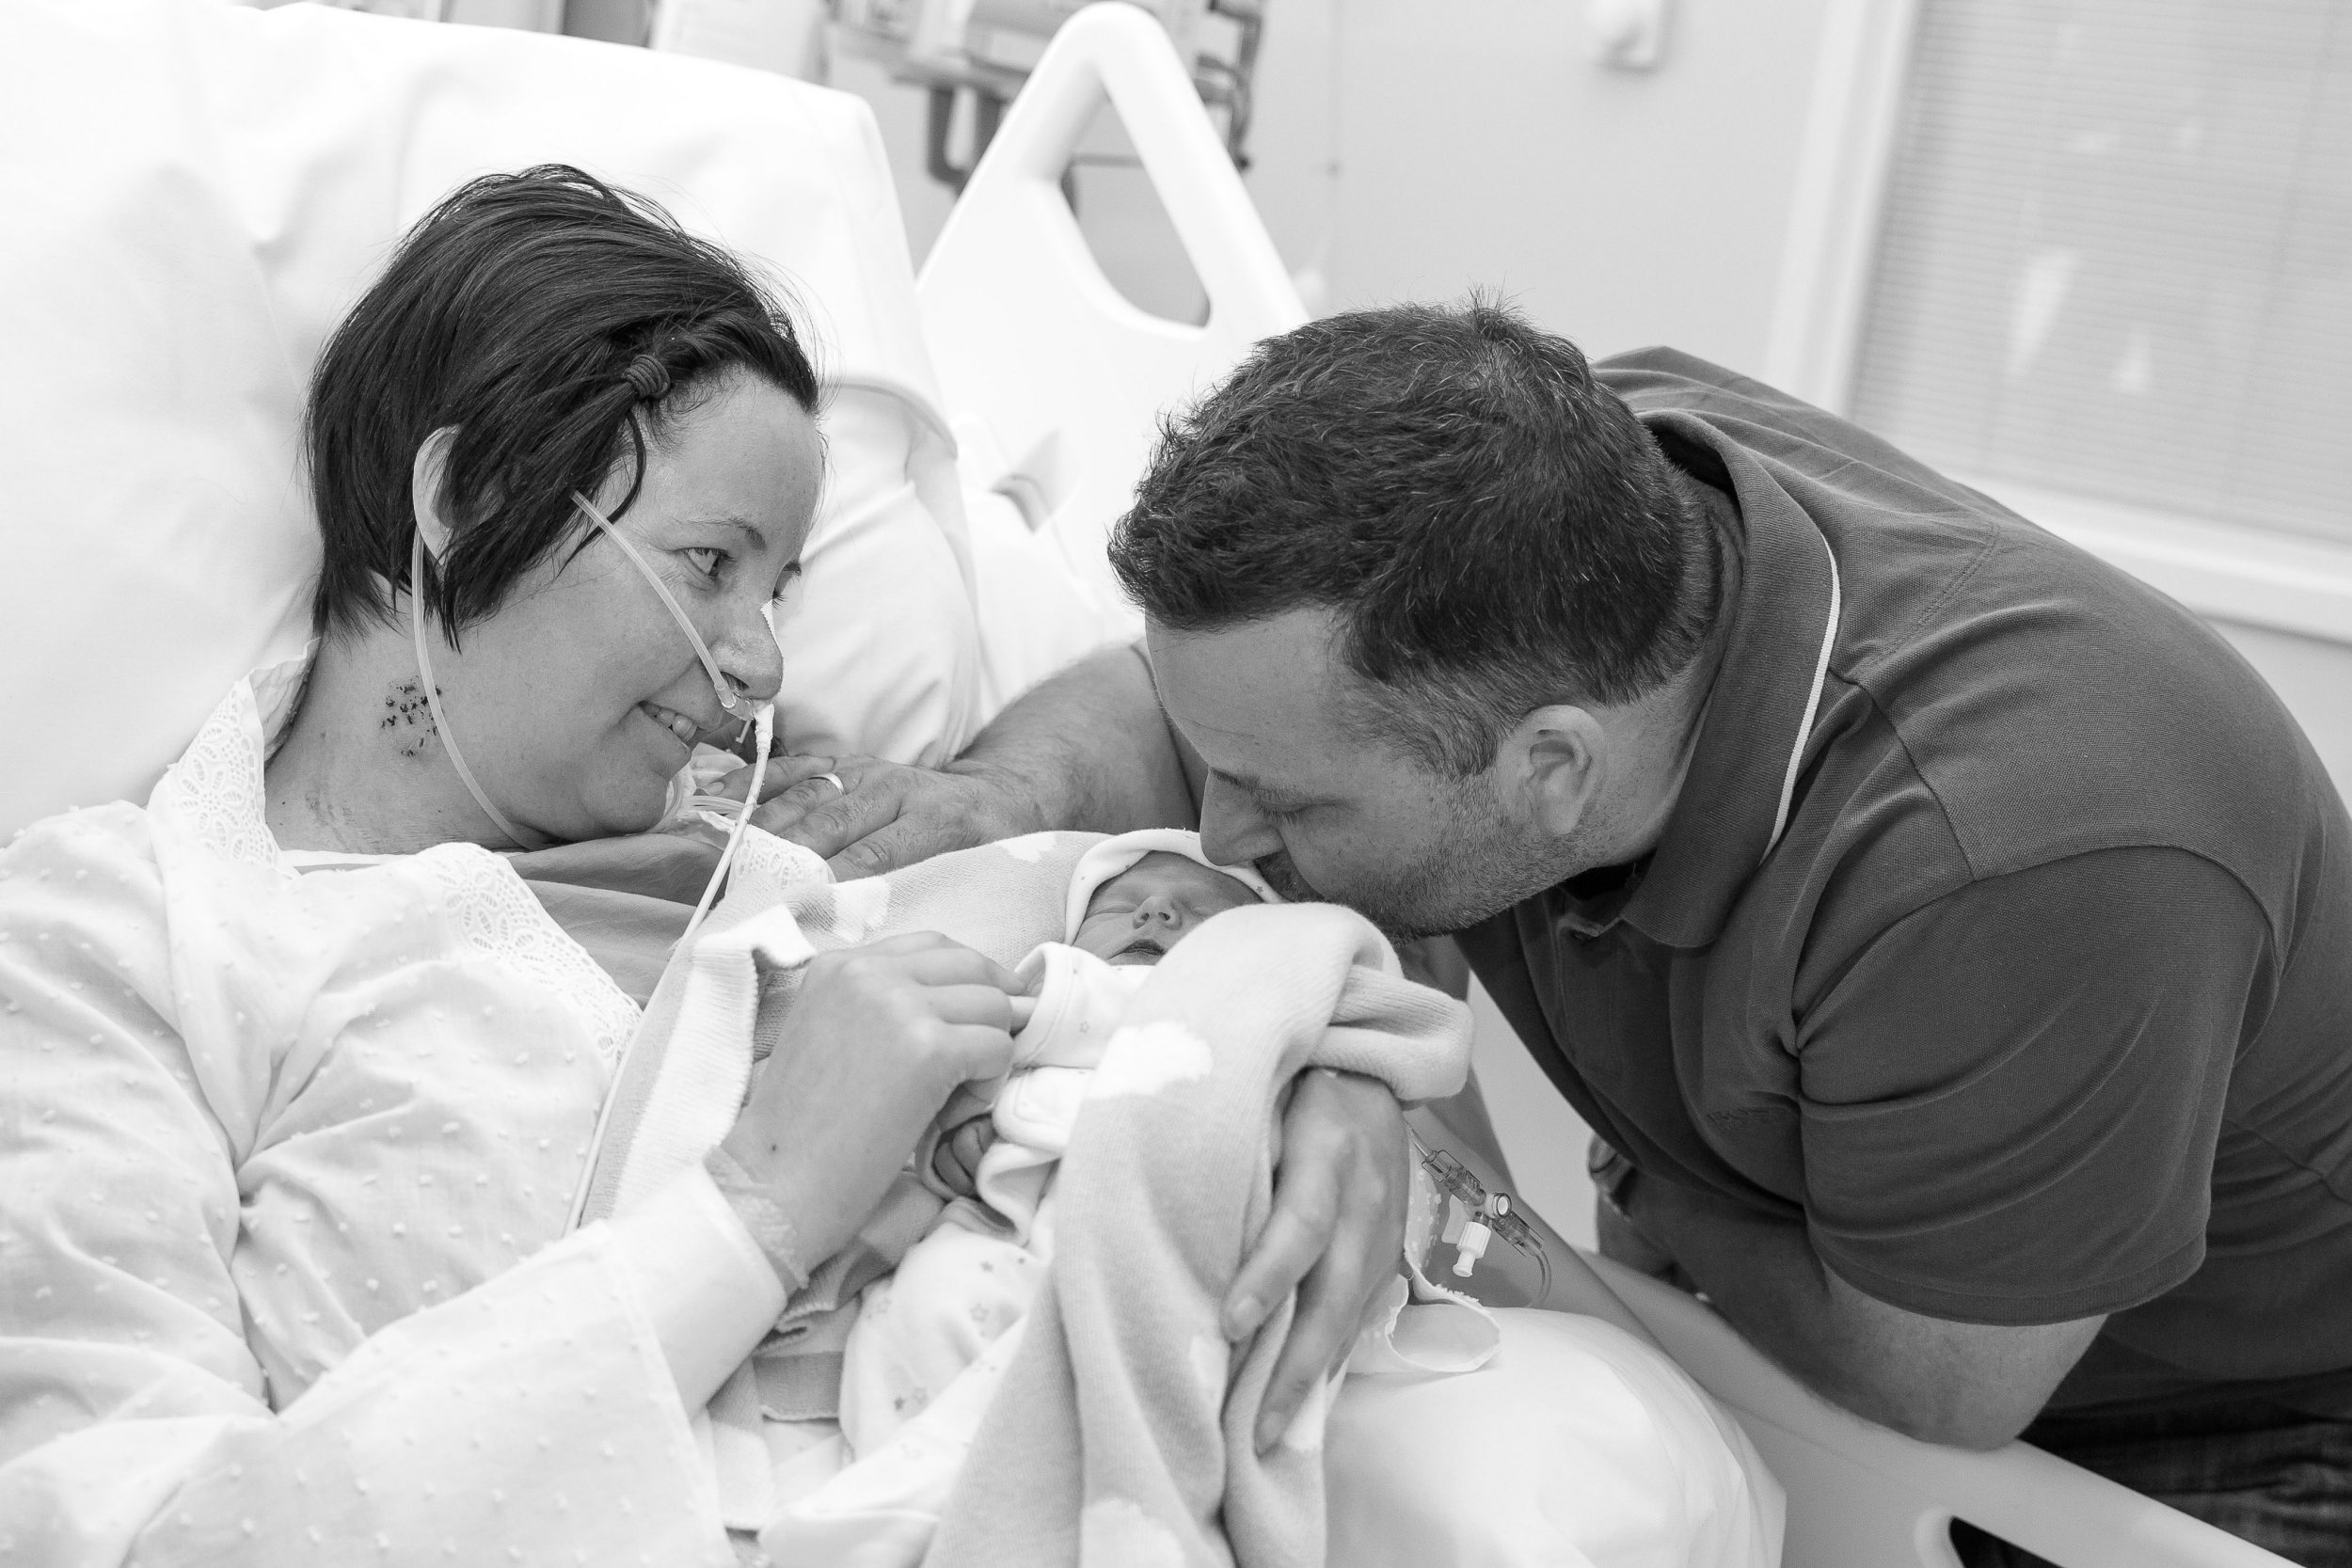 PIC FROM REMEMBER MY BABY/MERCURY PRESS (PICTURED: KERRY TELLWRIGHT, 34, WITH HER FIANCE CRAIG HILL AND THEIR STILLBORN SON AFTER SHE AWOKE FROM A COMA AT THE QUEEN ELIZABETH HOSPITAL IN BIRMINGHAM) A brave mum has shared heartbreaking photos taken¿with her stillborn son after she awoke from a coma to told he had been dead for THREE¿WEEKS. Kerry Tellwright, 34, and her fiancÈ Craig Hill, 47, were ëover the mooní when they found out they were expecting¿after eight years of trying, two rounds of¿IVF and an early miscarriage of twins. However despite a normal pregnancy, in her¿38th¿week Kerry¿started to experience pain in her left shoulder that ëfelt like a trapped nerveí. SEE MERCURY COPY